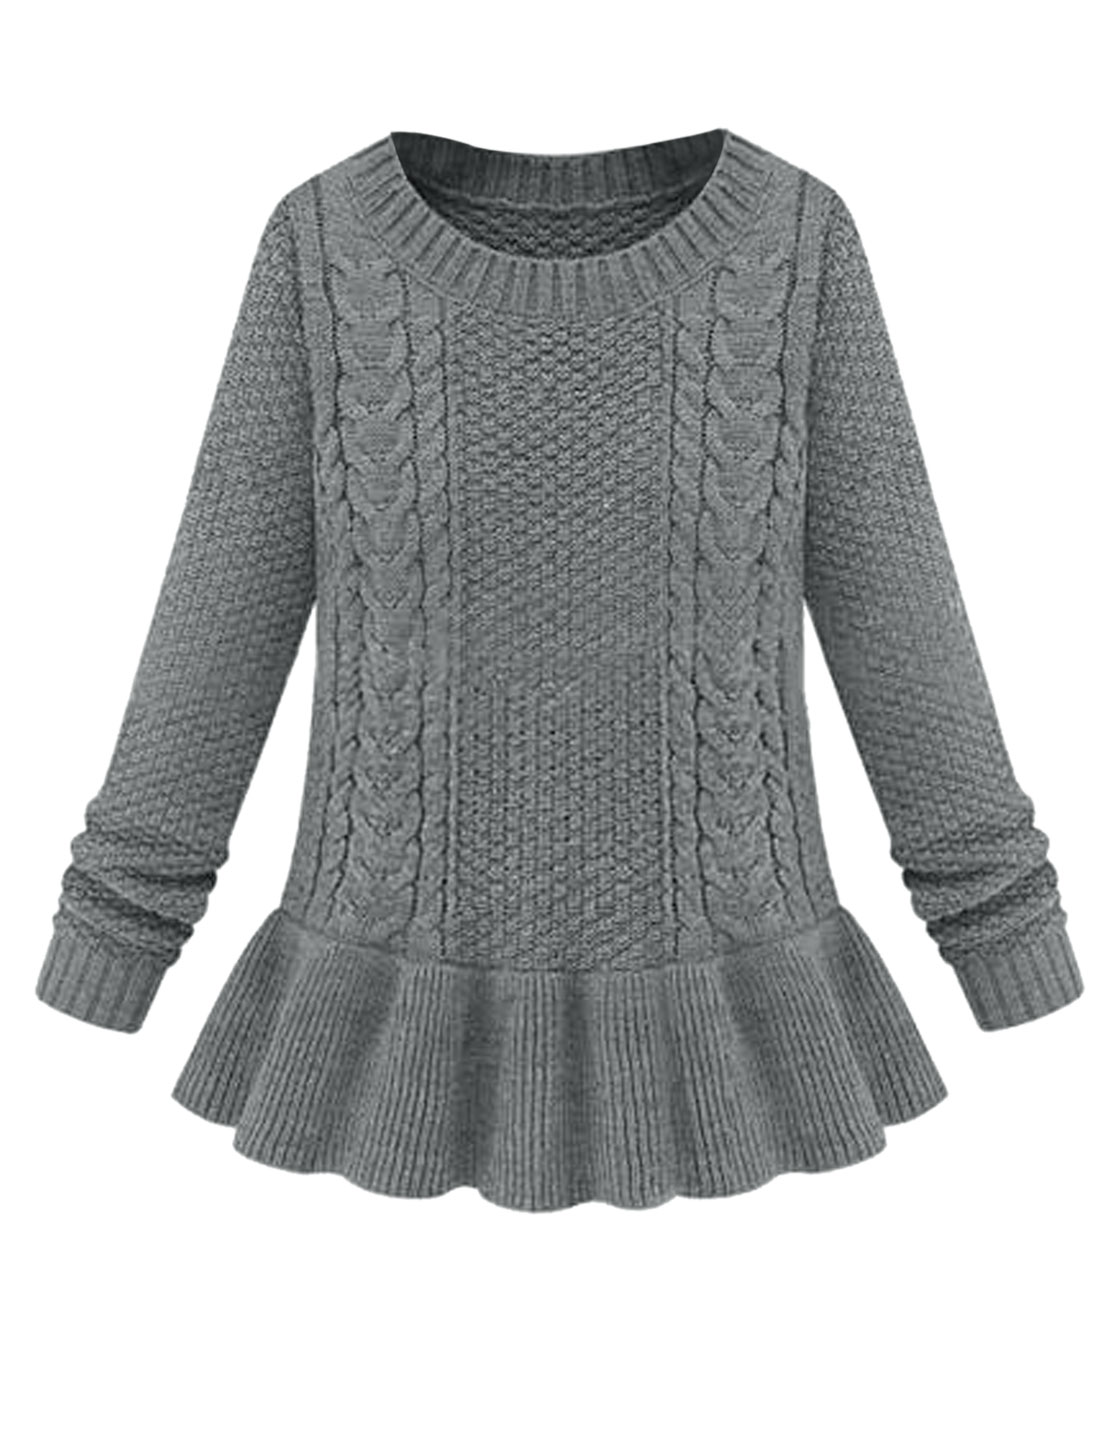 Cozy Fit Ribbed Cuff w Hem Slipover Peplum Sweater for Lady Dark Gray M